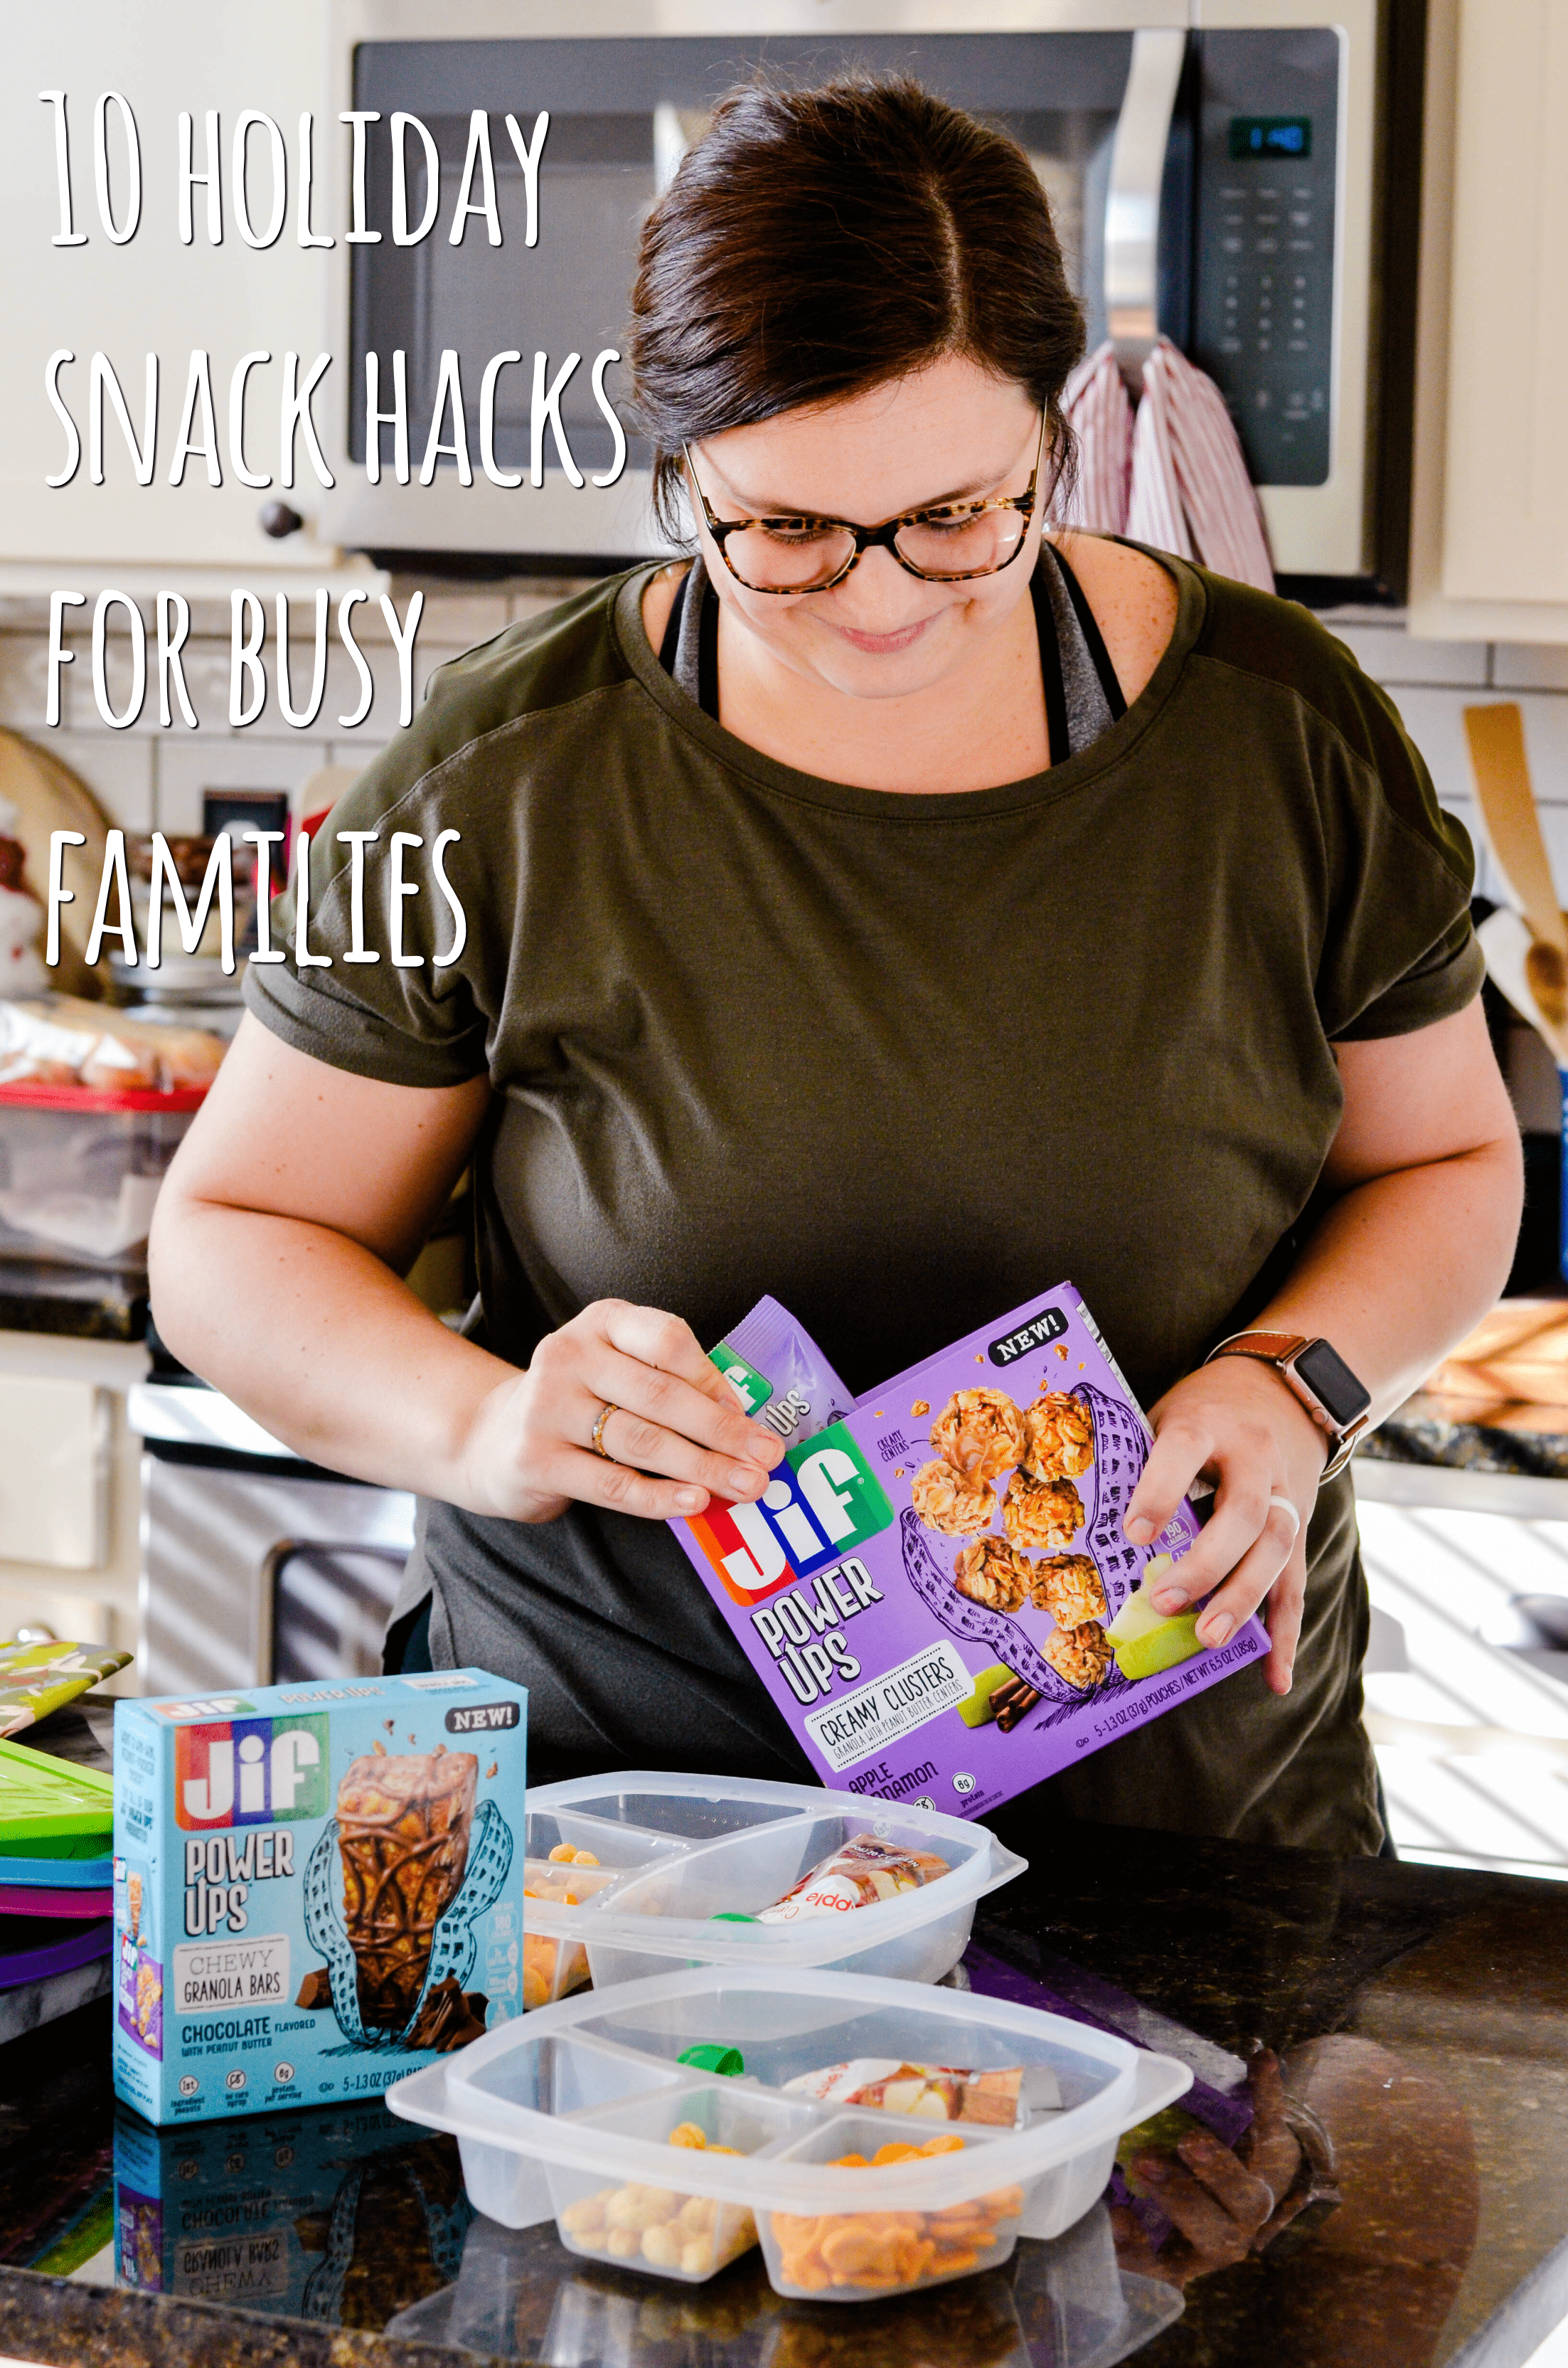 We know the holidays are a busy time for families, so I've teamed up with Jif® Power Ups at Publix™ to bring you 10 Holiday Snack Hacks for your busy family this holiday season!